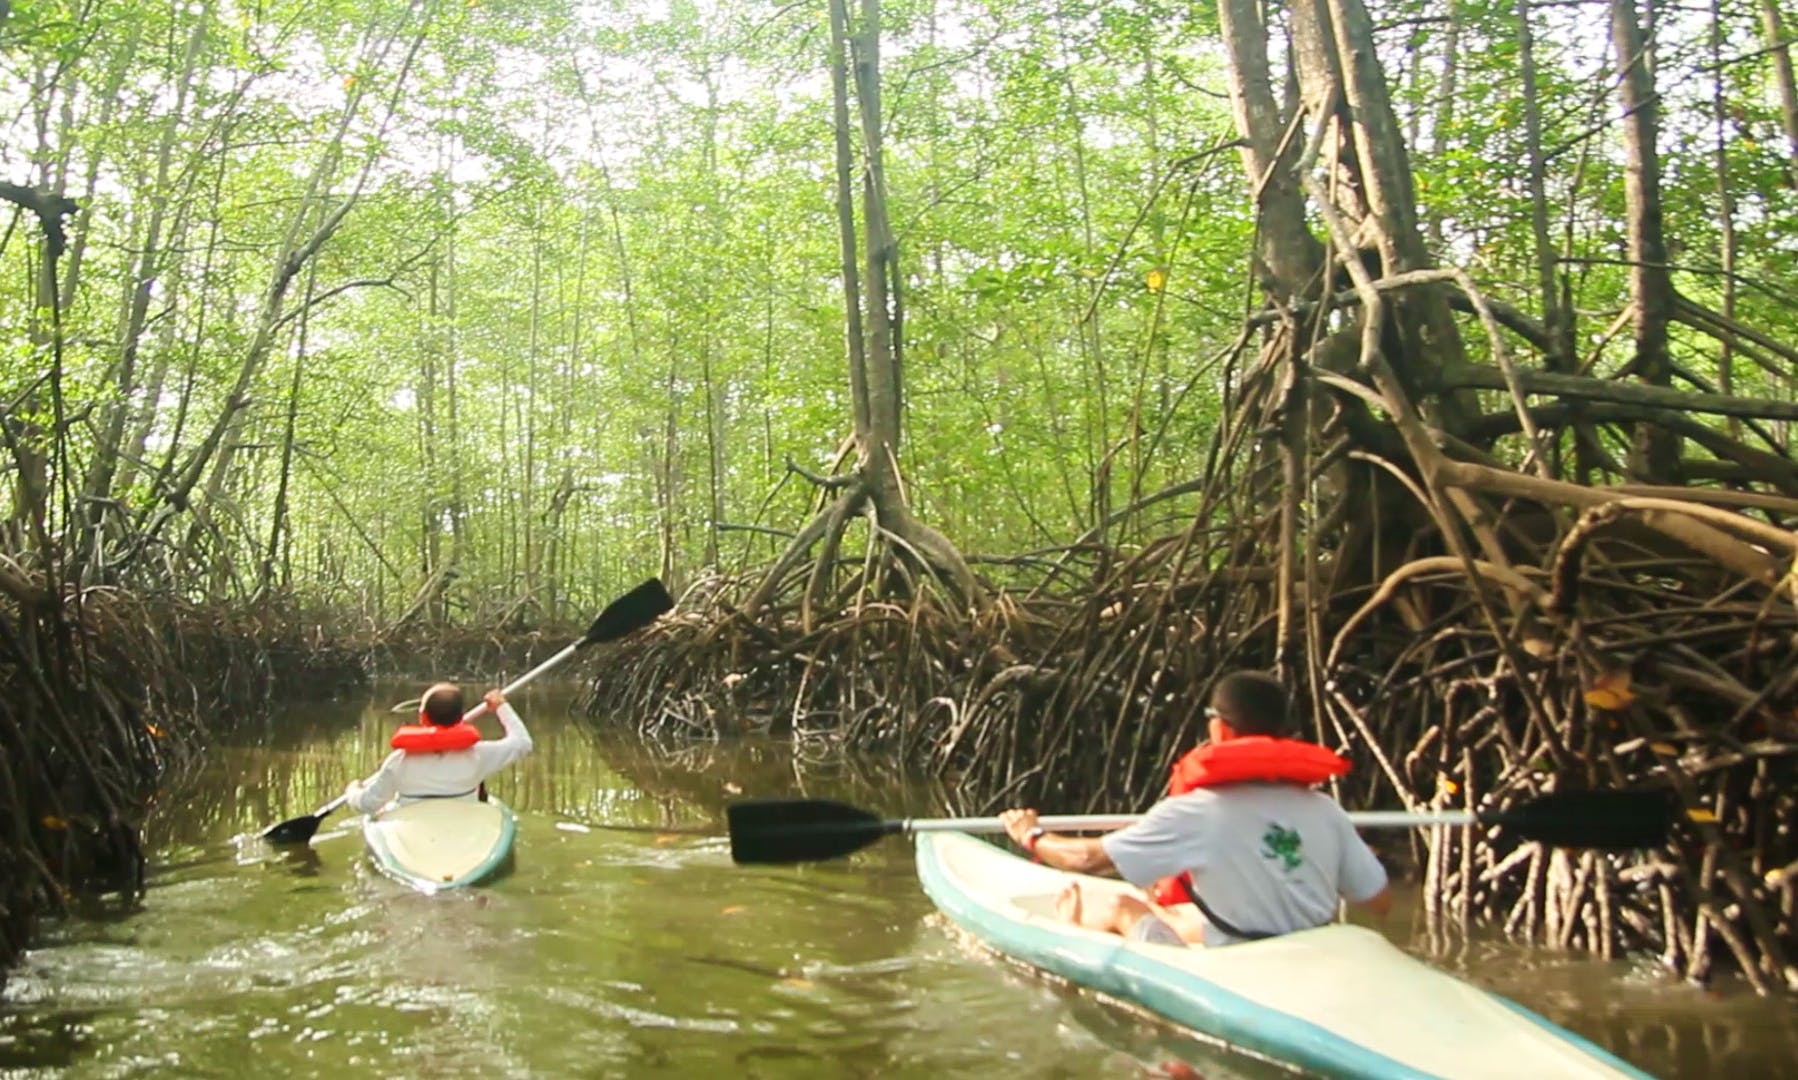 Enjoy Kayaking in Provincia de Puntarenas, Costa Rica